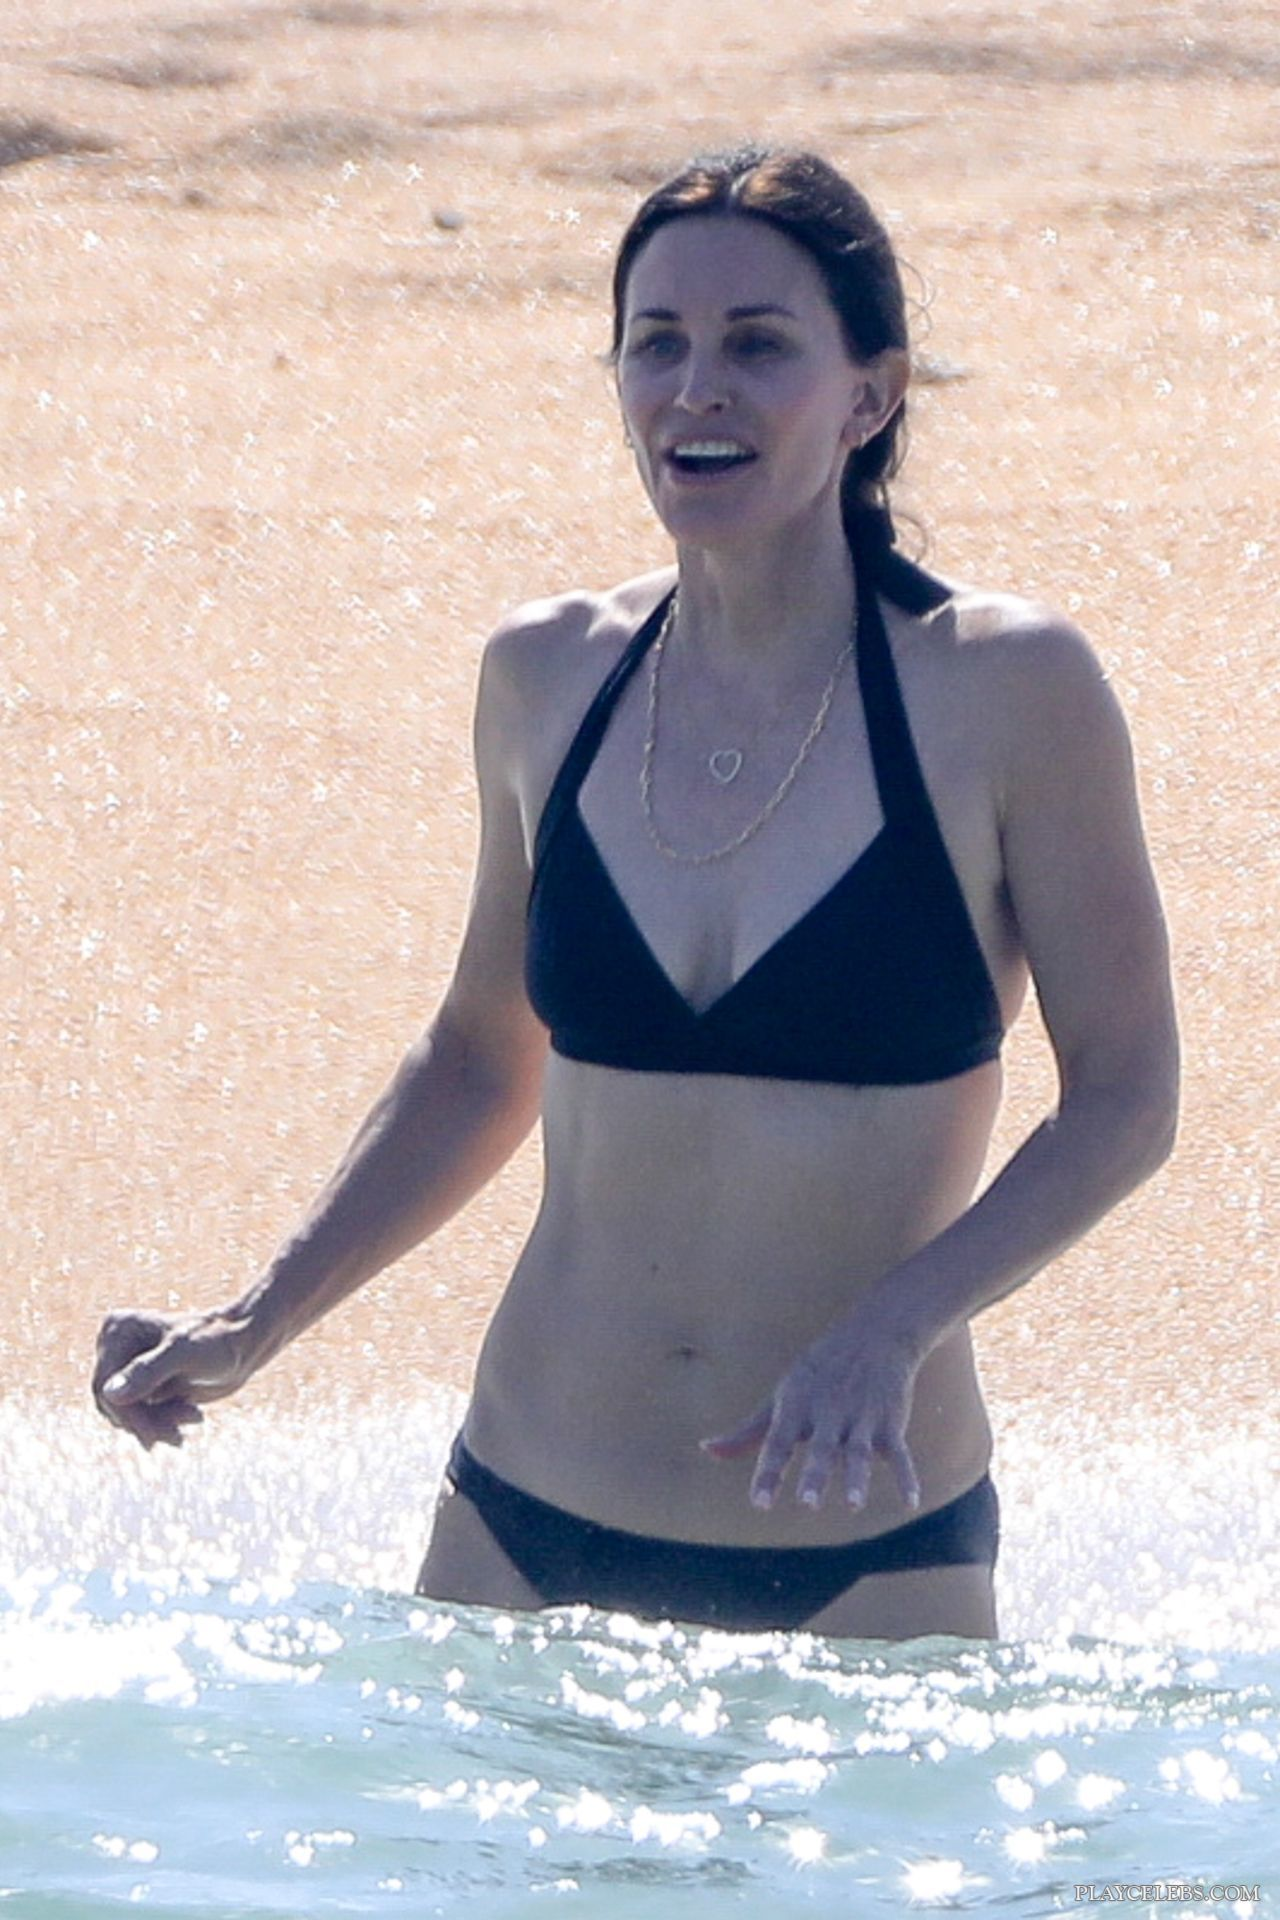 Courteney Cox Caught By Paparazzi In Bikini On A Beach